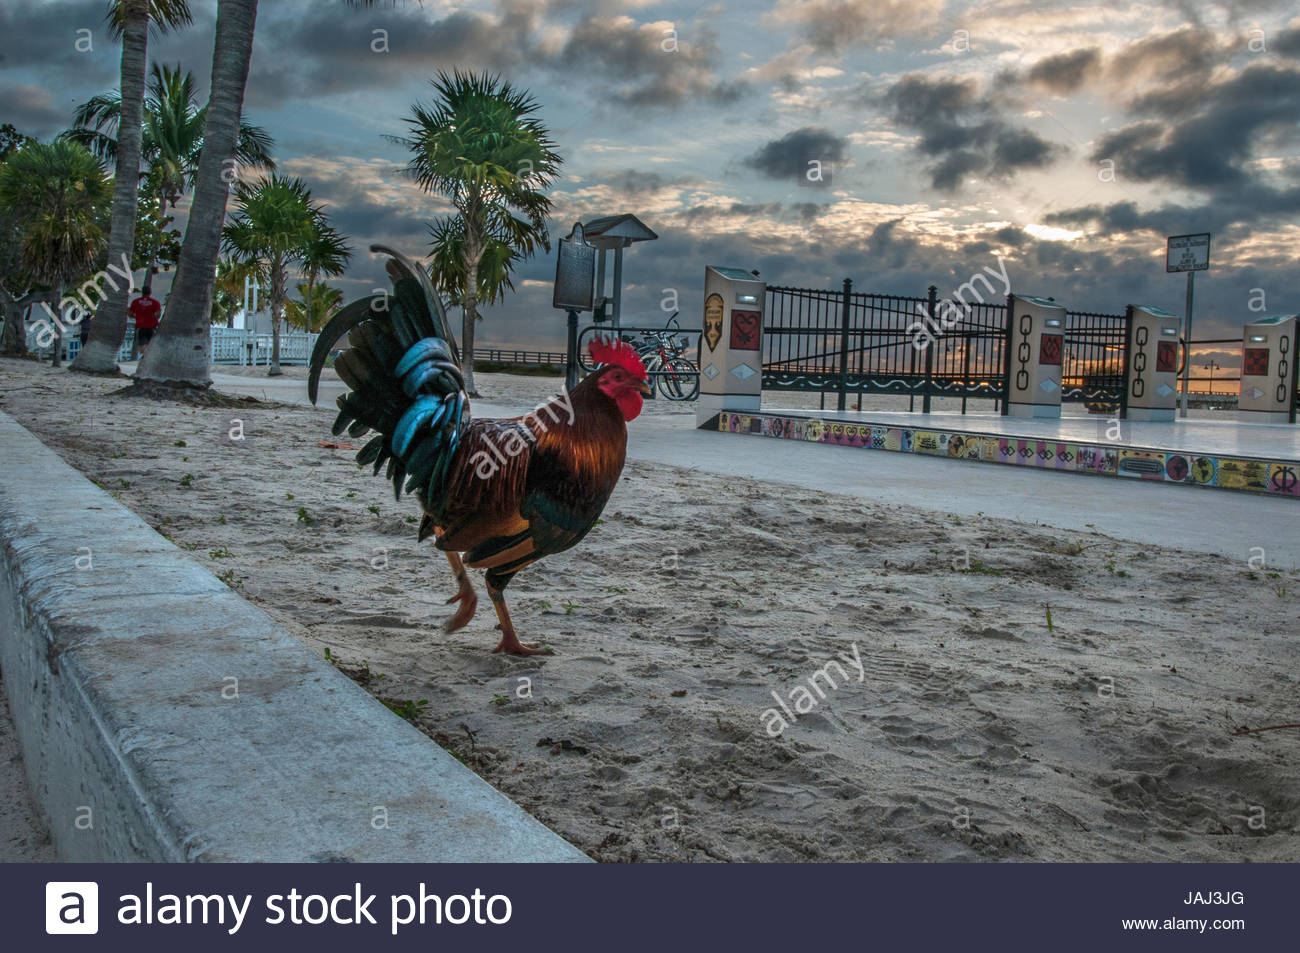 Coq sur Boson de plage de Key West, Floride. Photo Stock